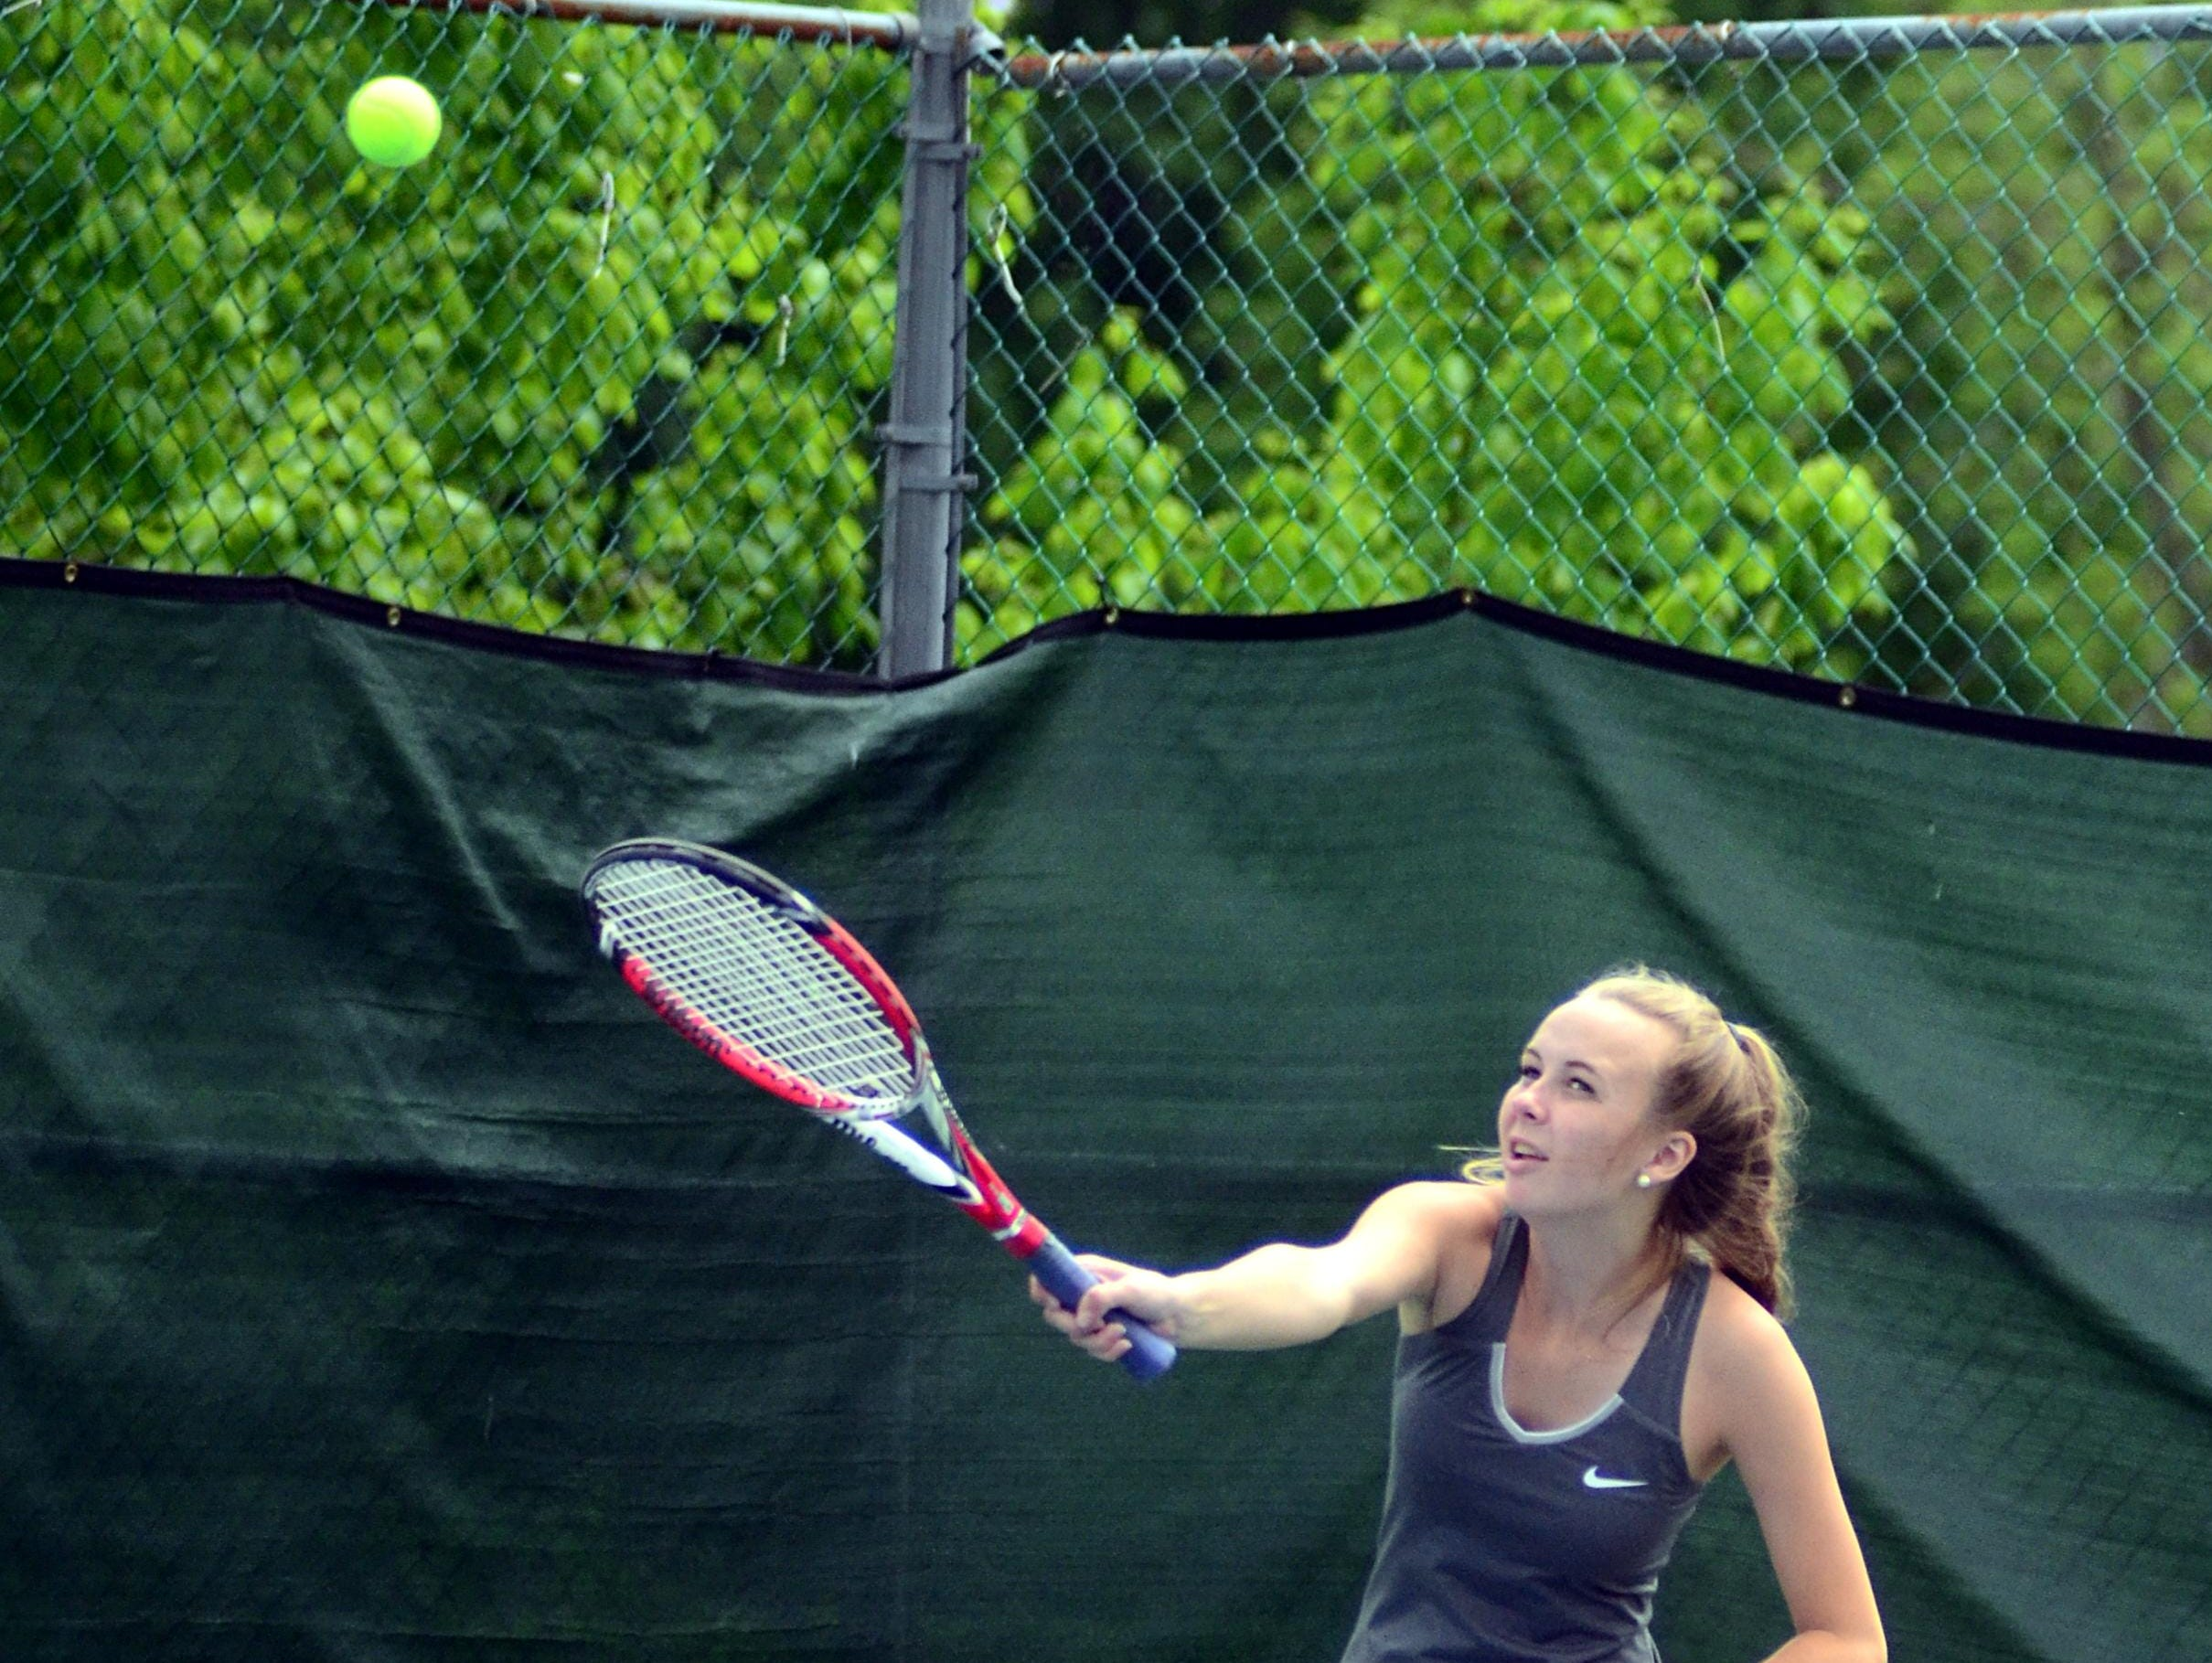 Hendersonville High senior Allison Newell serves during Tuesday's District 9-AAA Individual Tennis Tournament. Newell and classmate Rae Gullett won their semifinal match and advanced to the Region 5-AAA Tournament.